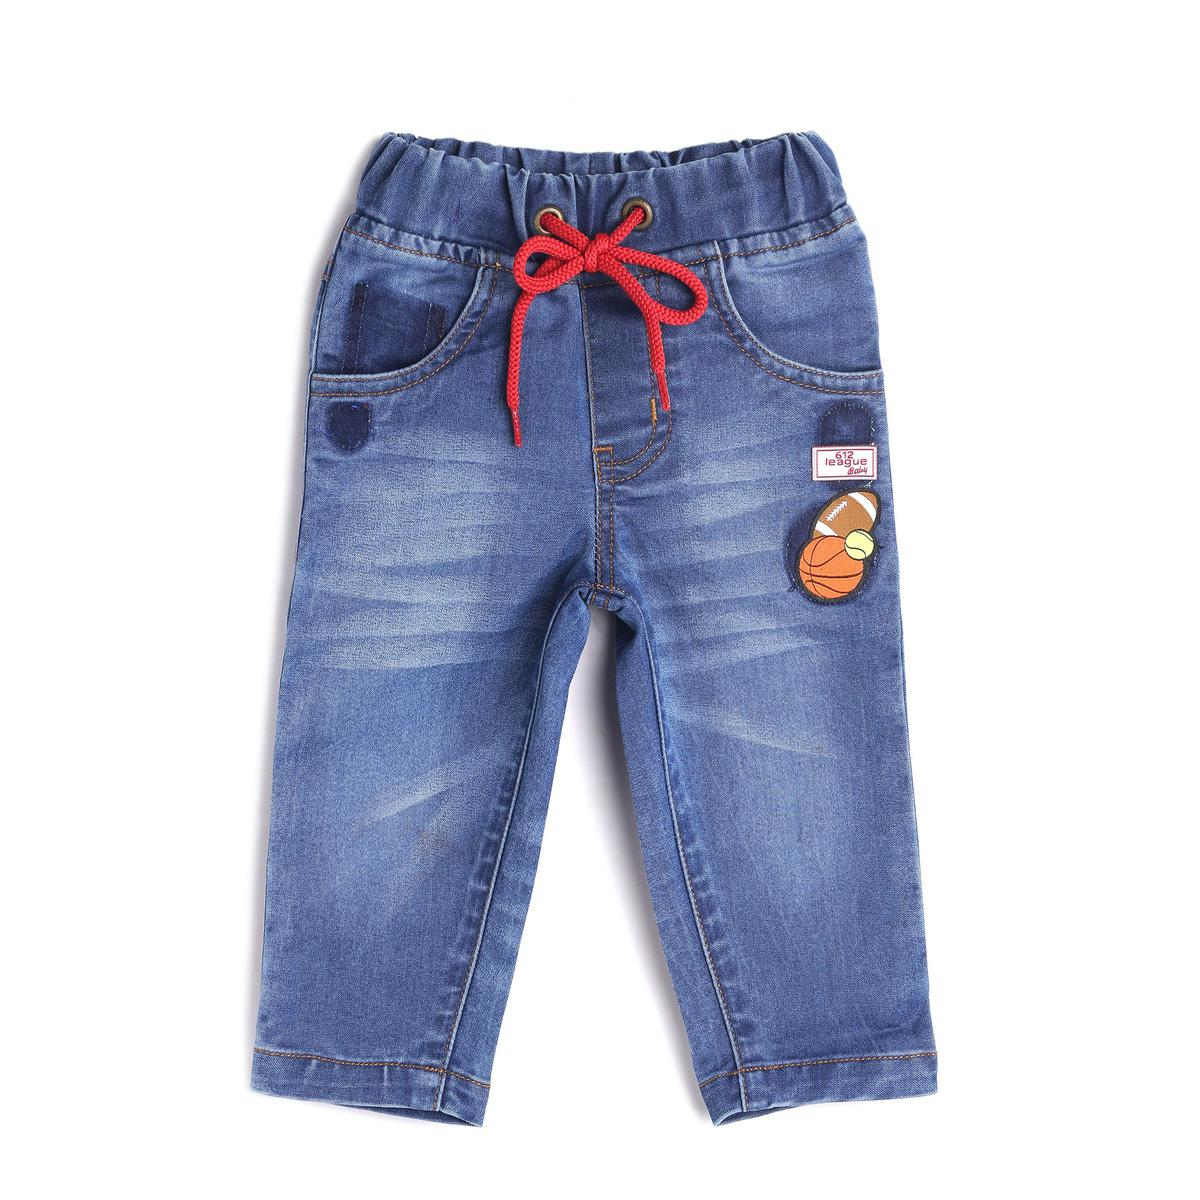 612 League - Blue Colored Bottoms Elasticated Denim With Stripe Pocket Cotton Jeans For Baby Boys